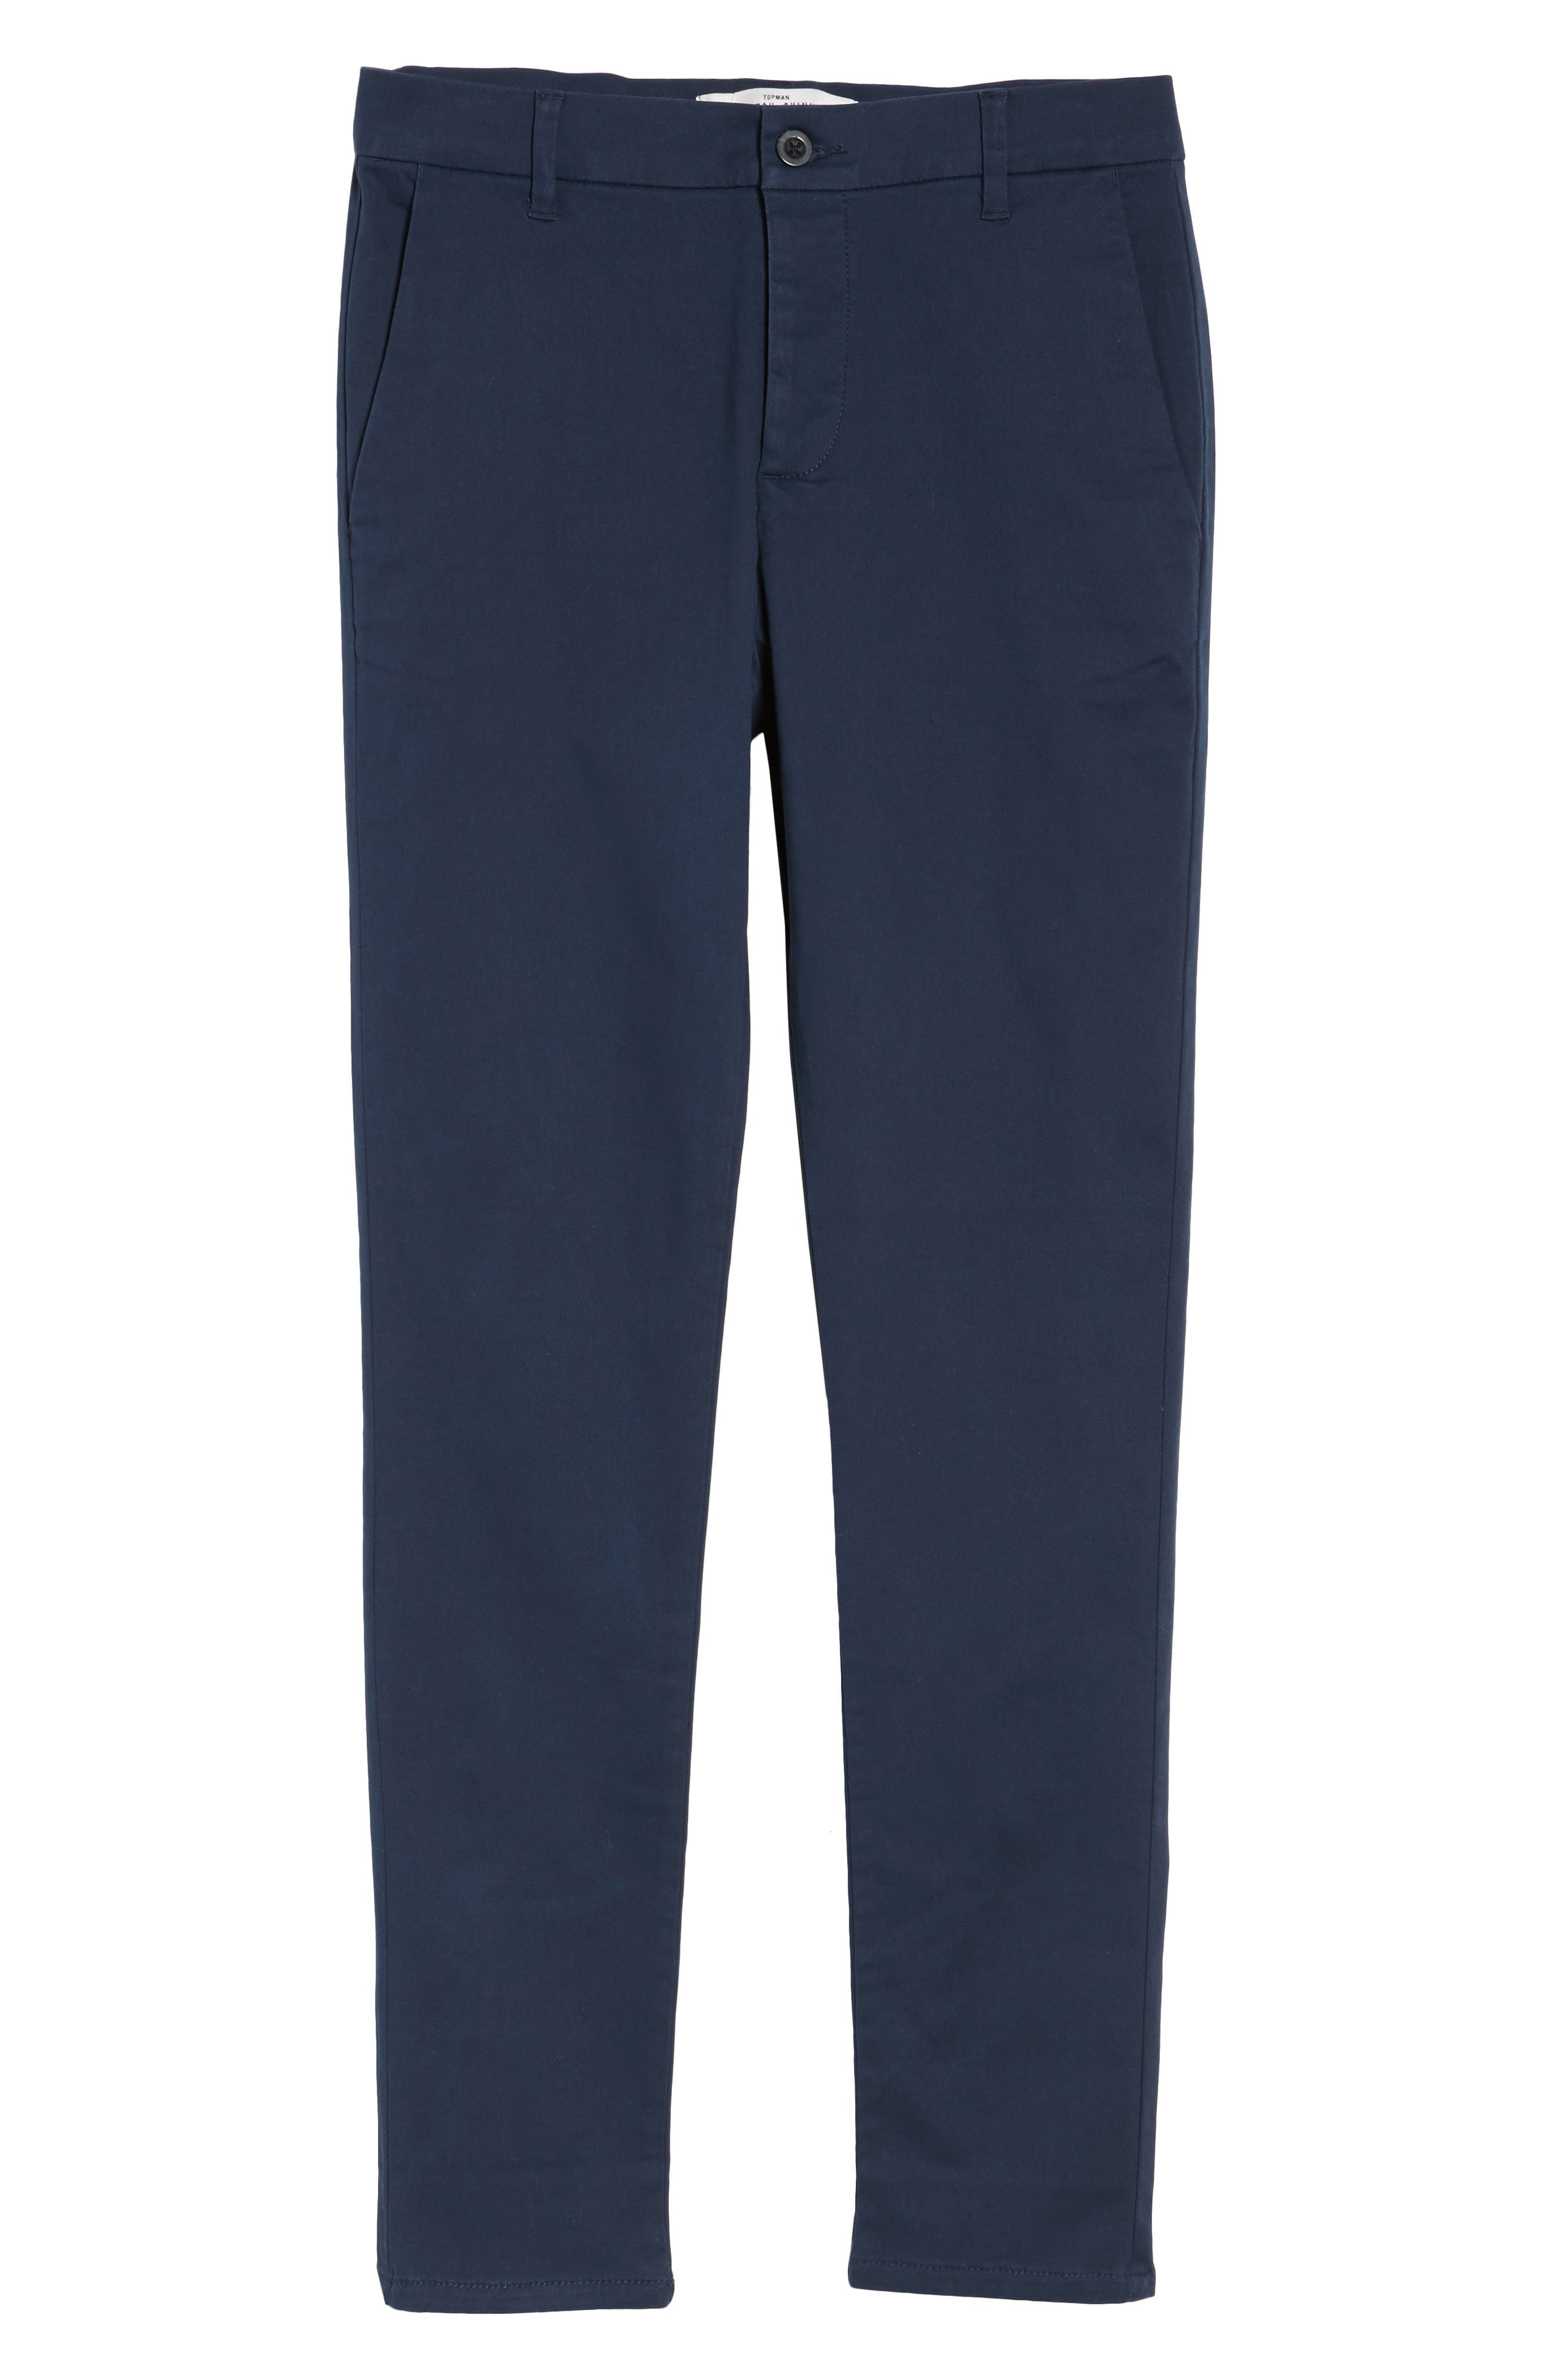 Stretch Skinny Fit Chinos,                             Alternate thumbnail 2, color,                             DARK BLUE